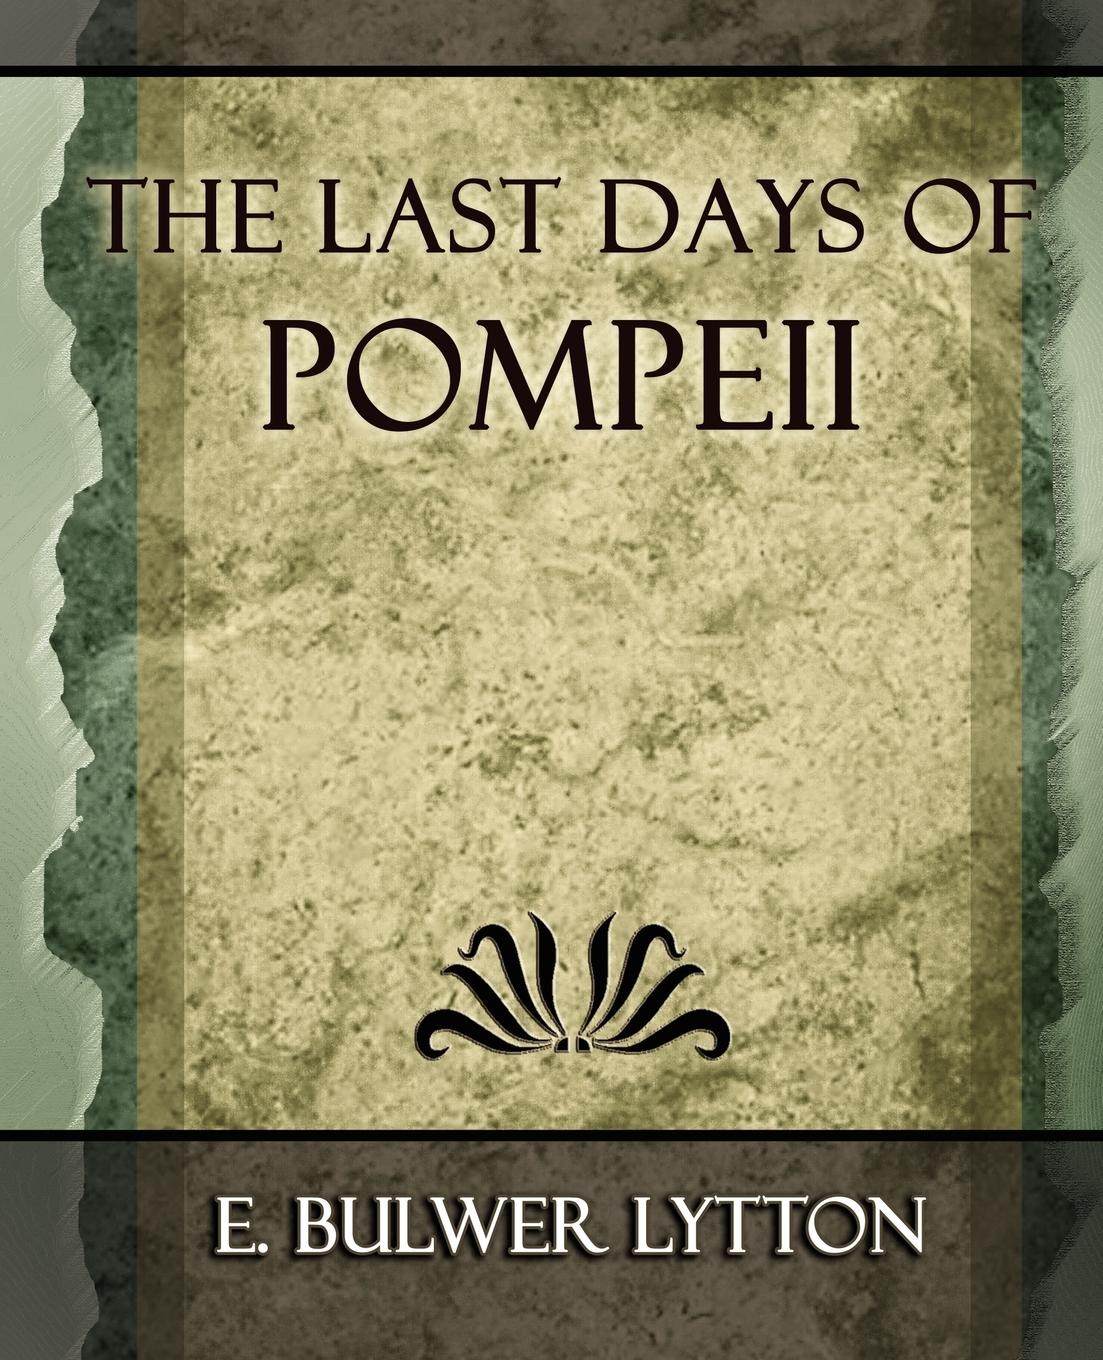 Bulwer Lytton E. Bulwer Lytton, E. Bulwer Lytton The Last Days of Pompeii - 1887 henry lytton bulwer historical characters talleyrand cobbet mackintosh canning